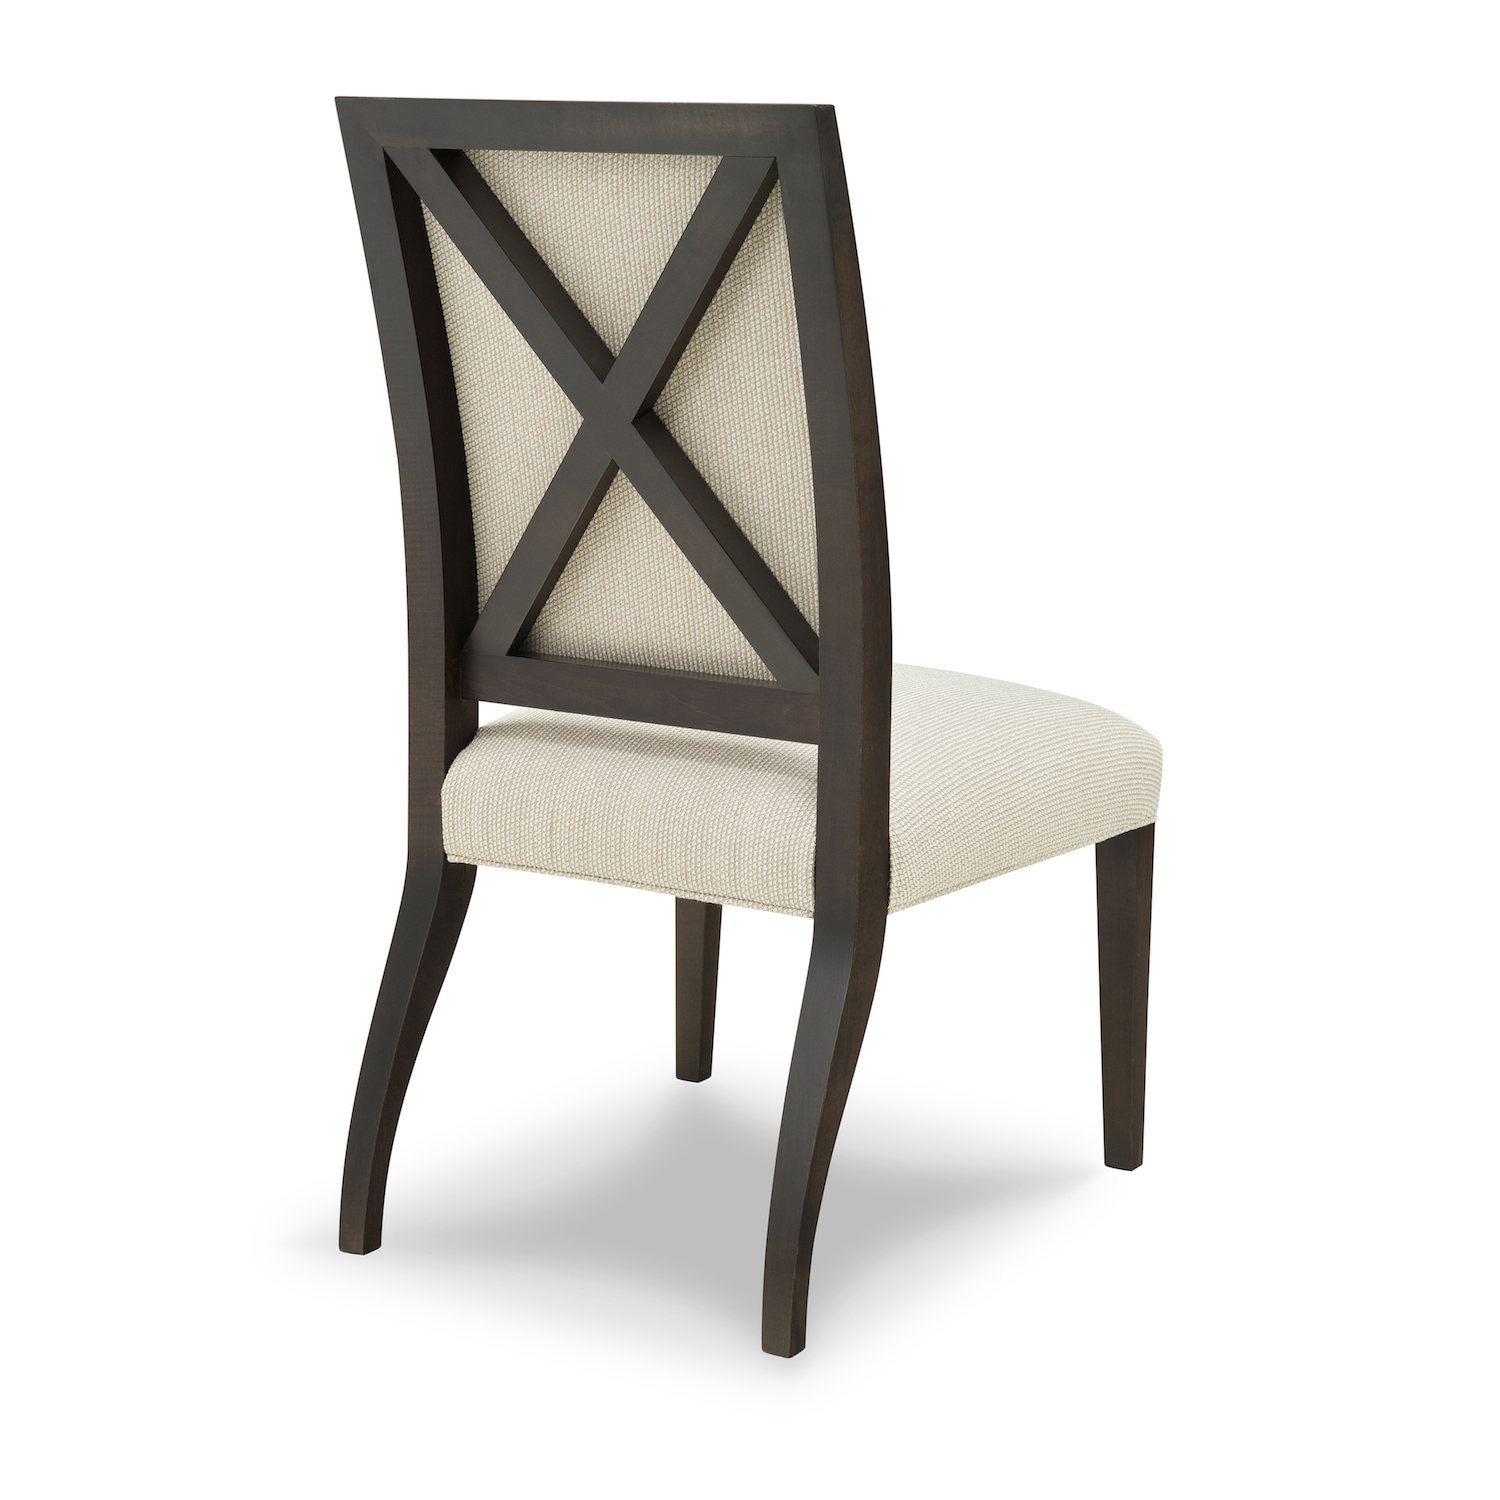 Lisa_Chair_Back_Angled-1-1.jpg